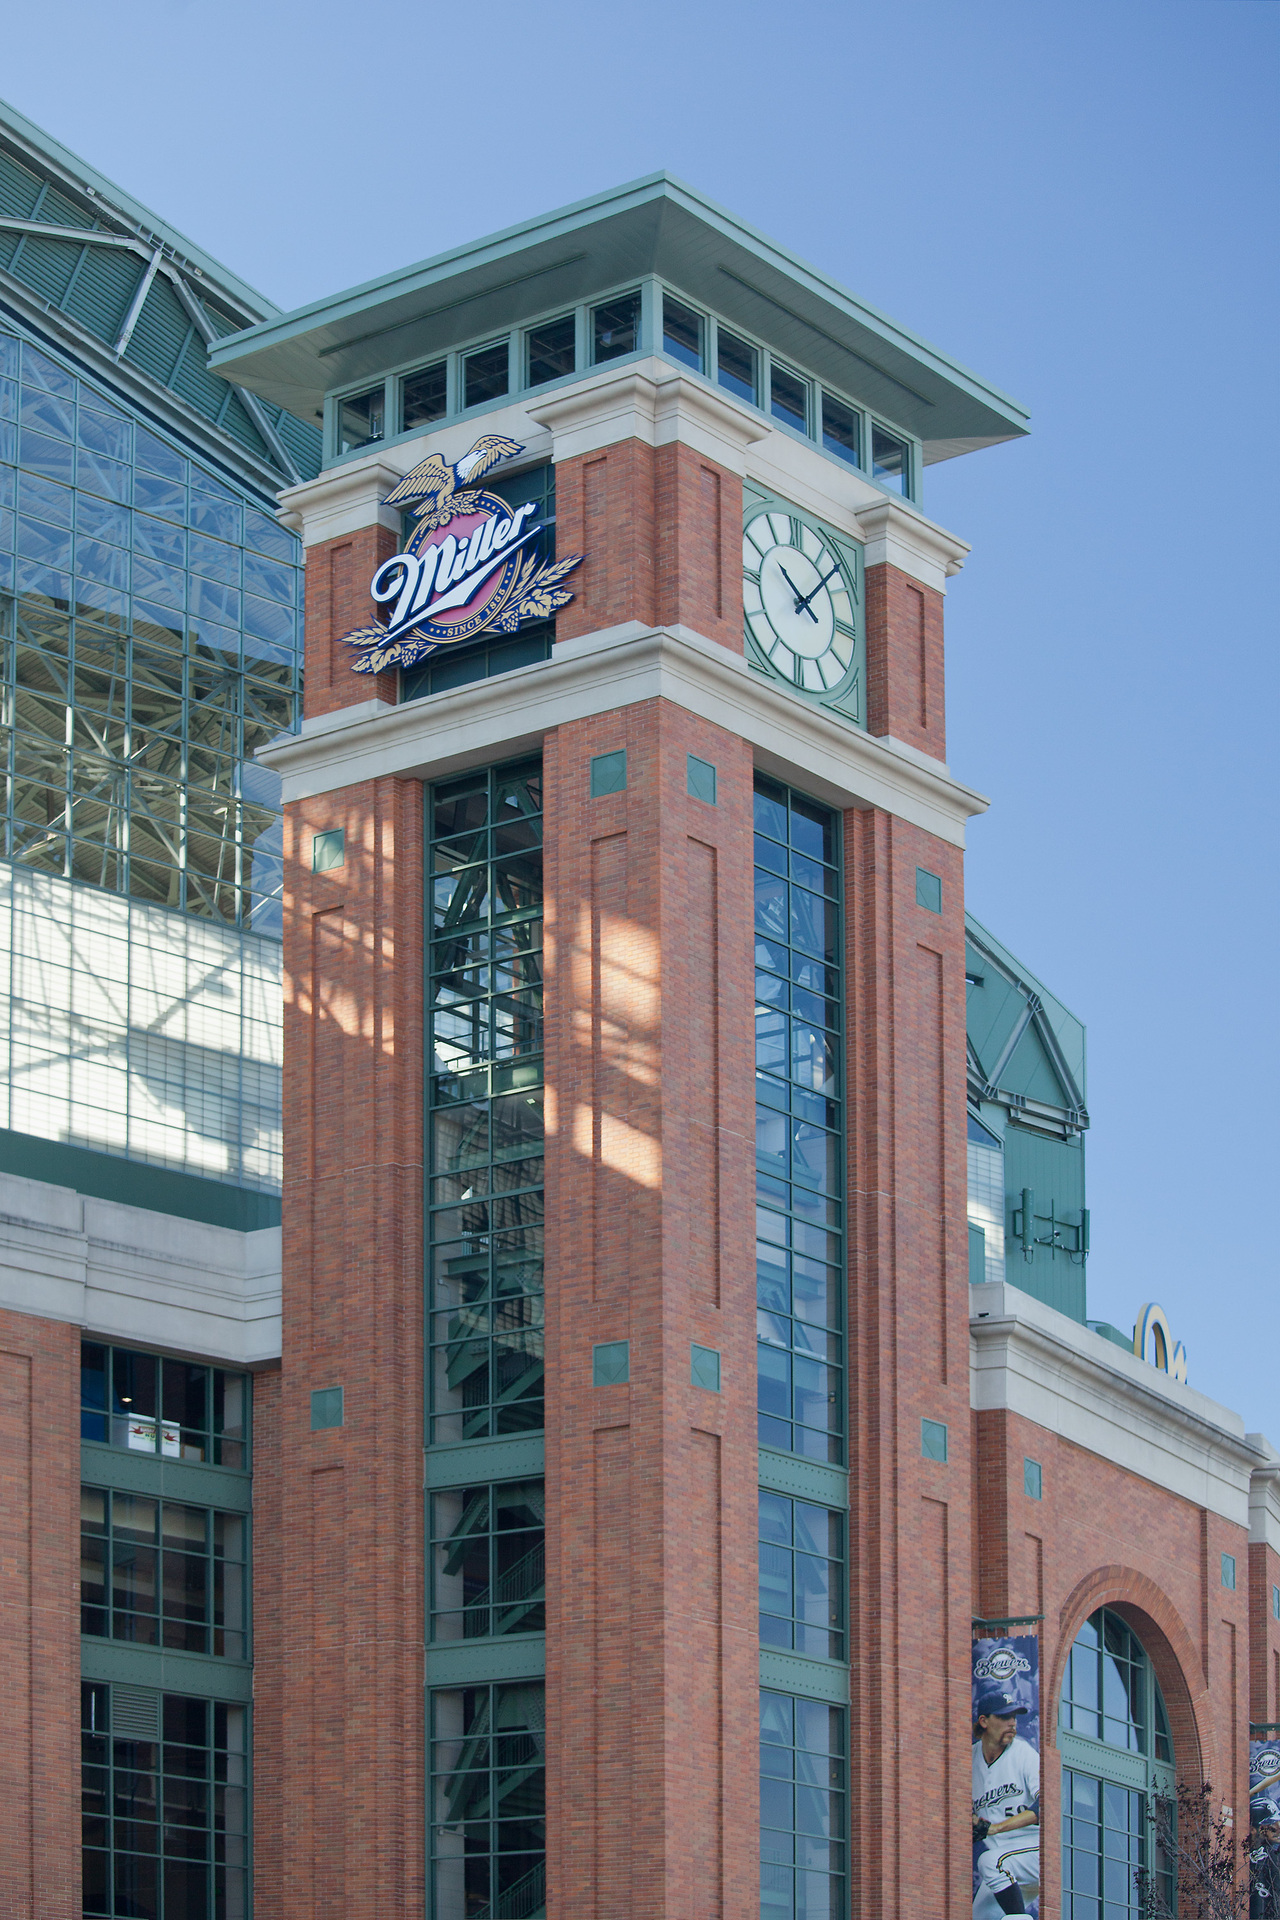 American Family Field (formerly Miller Park), home of the Milwaukee Brewers, features a unique large clock tower and multi-colored bricks from Belden Brick.